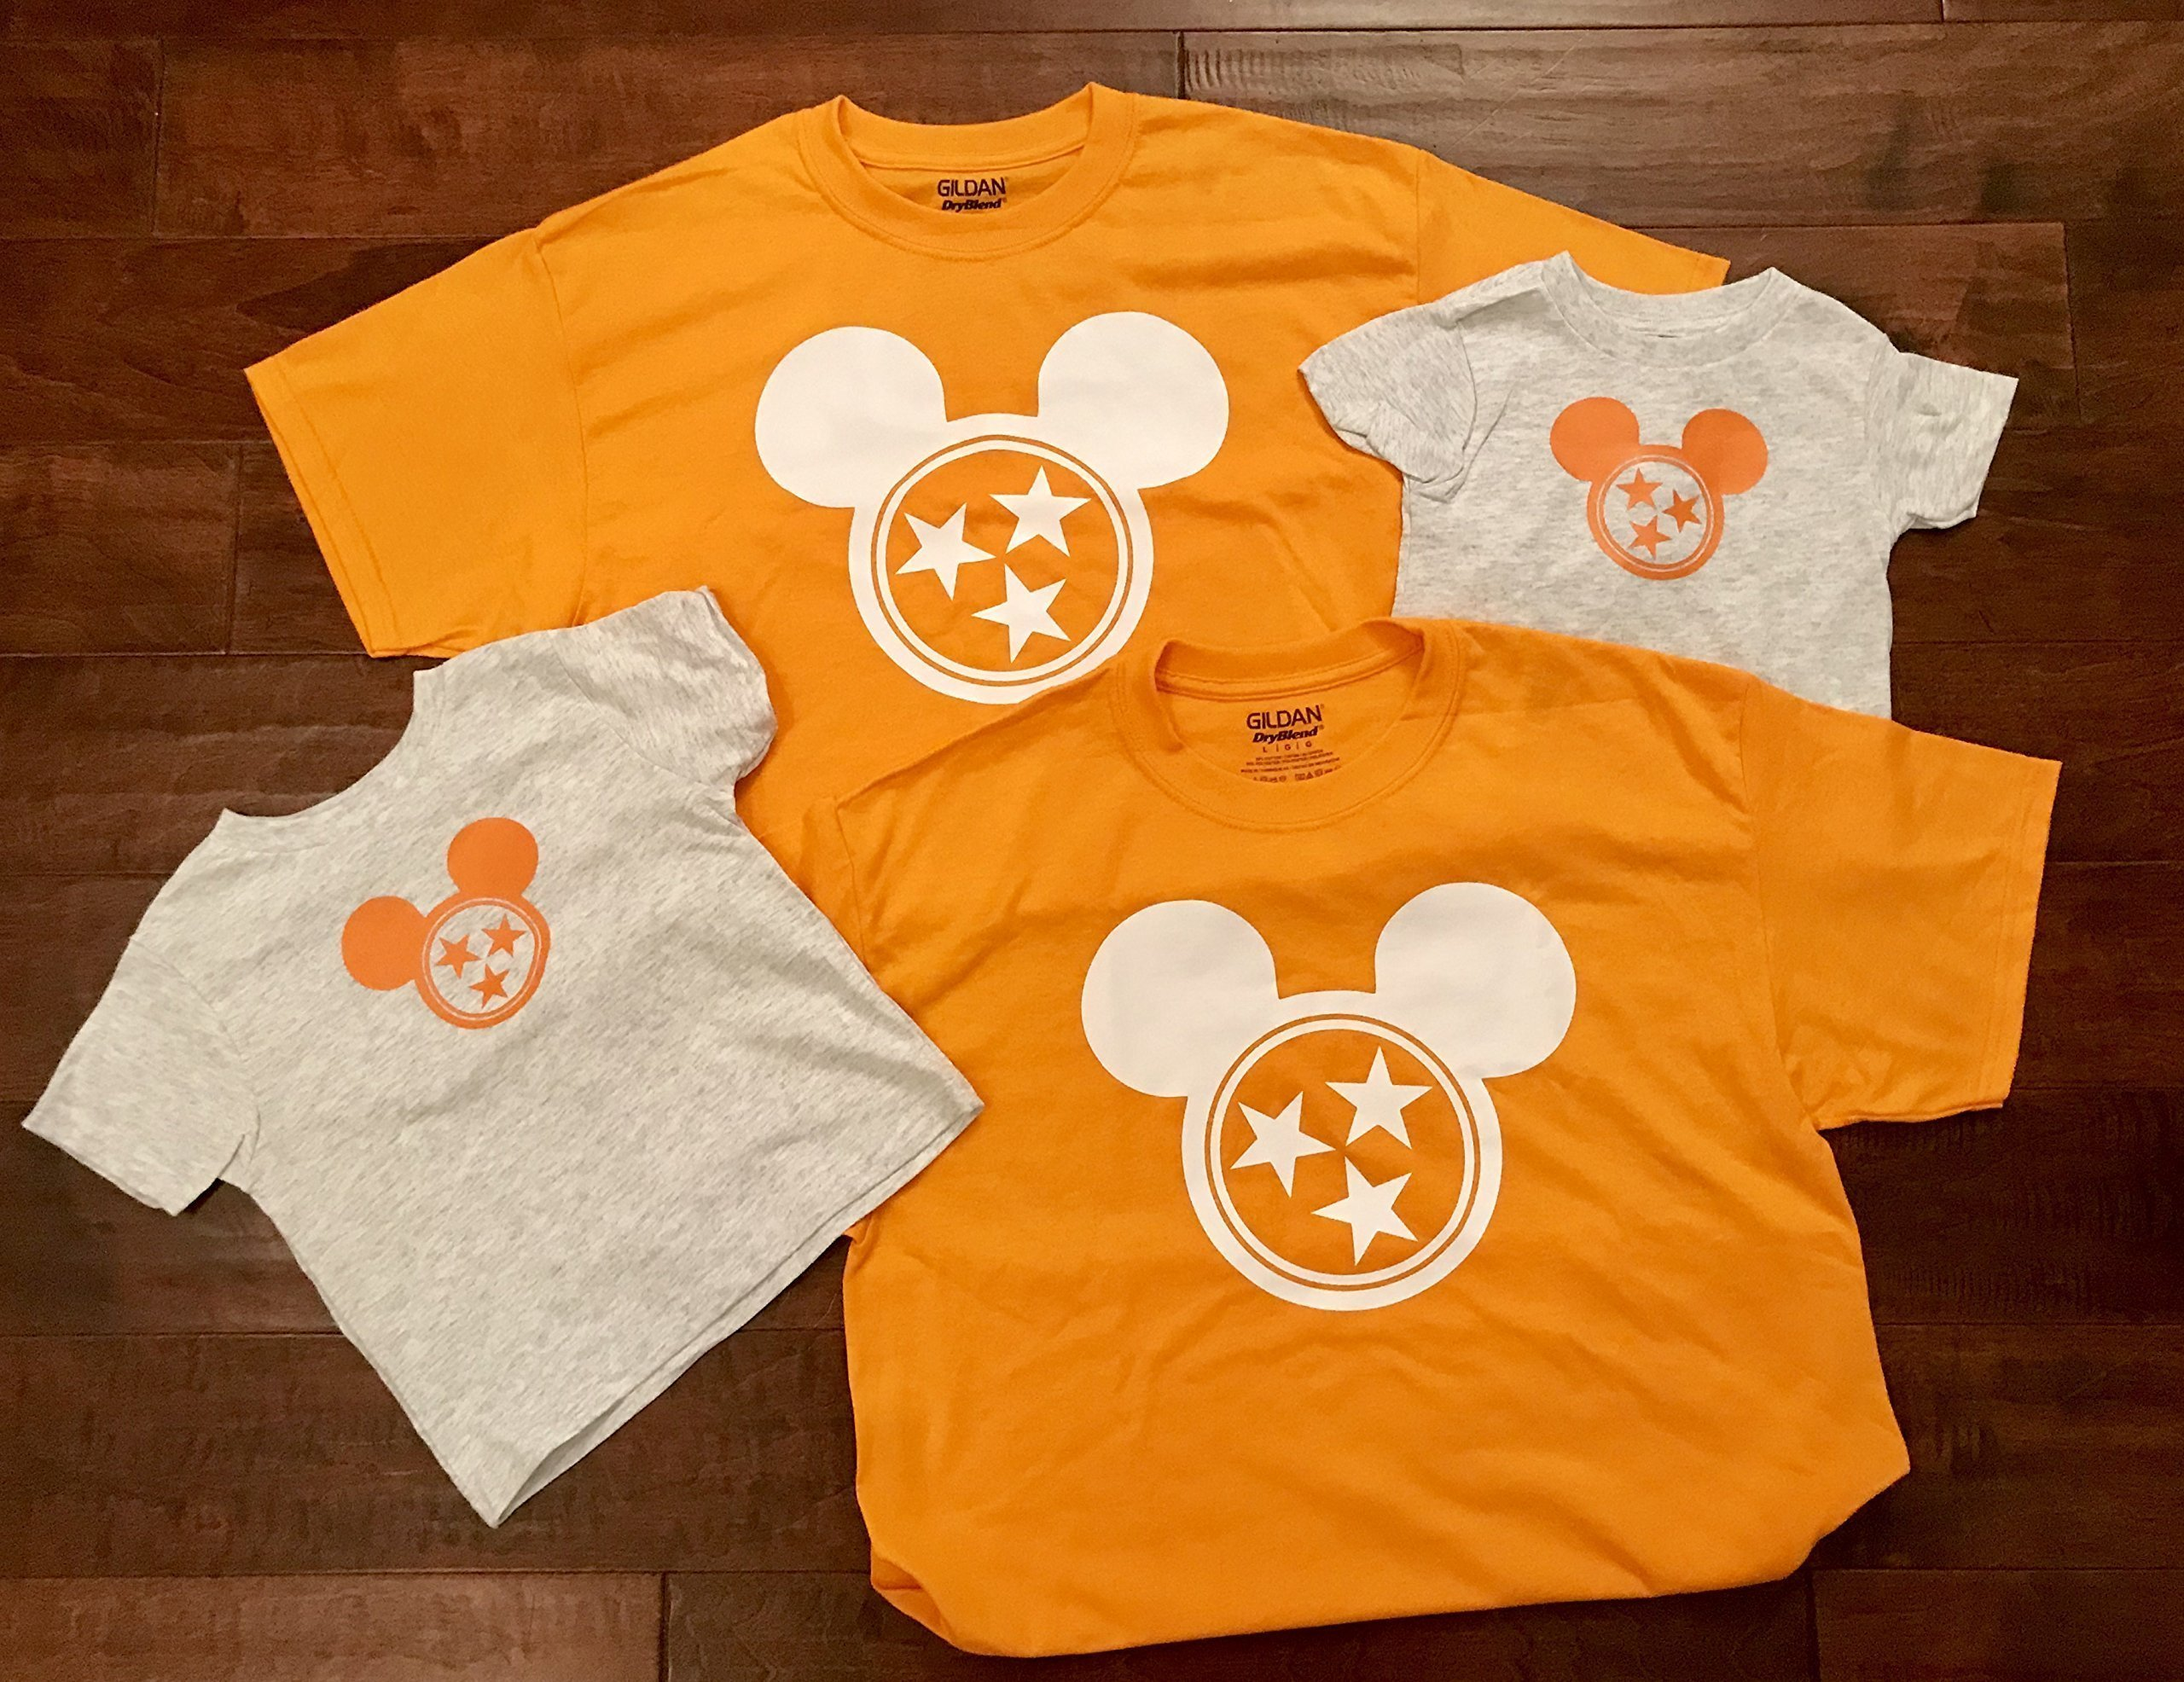 Tennessee Mickey Mouse Shirt - Adult Sizes